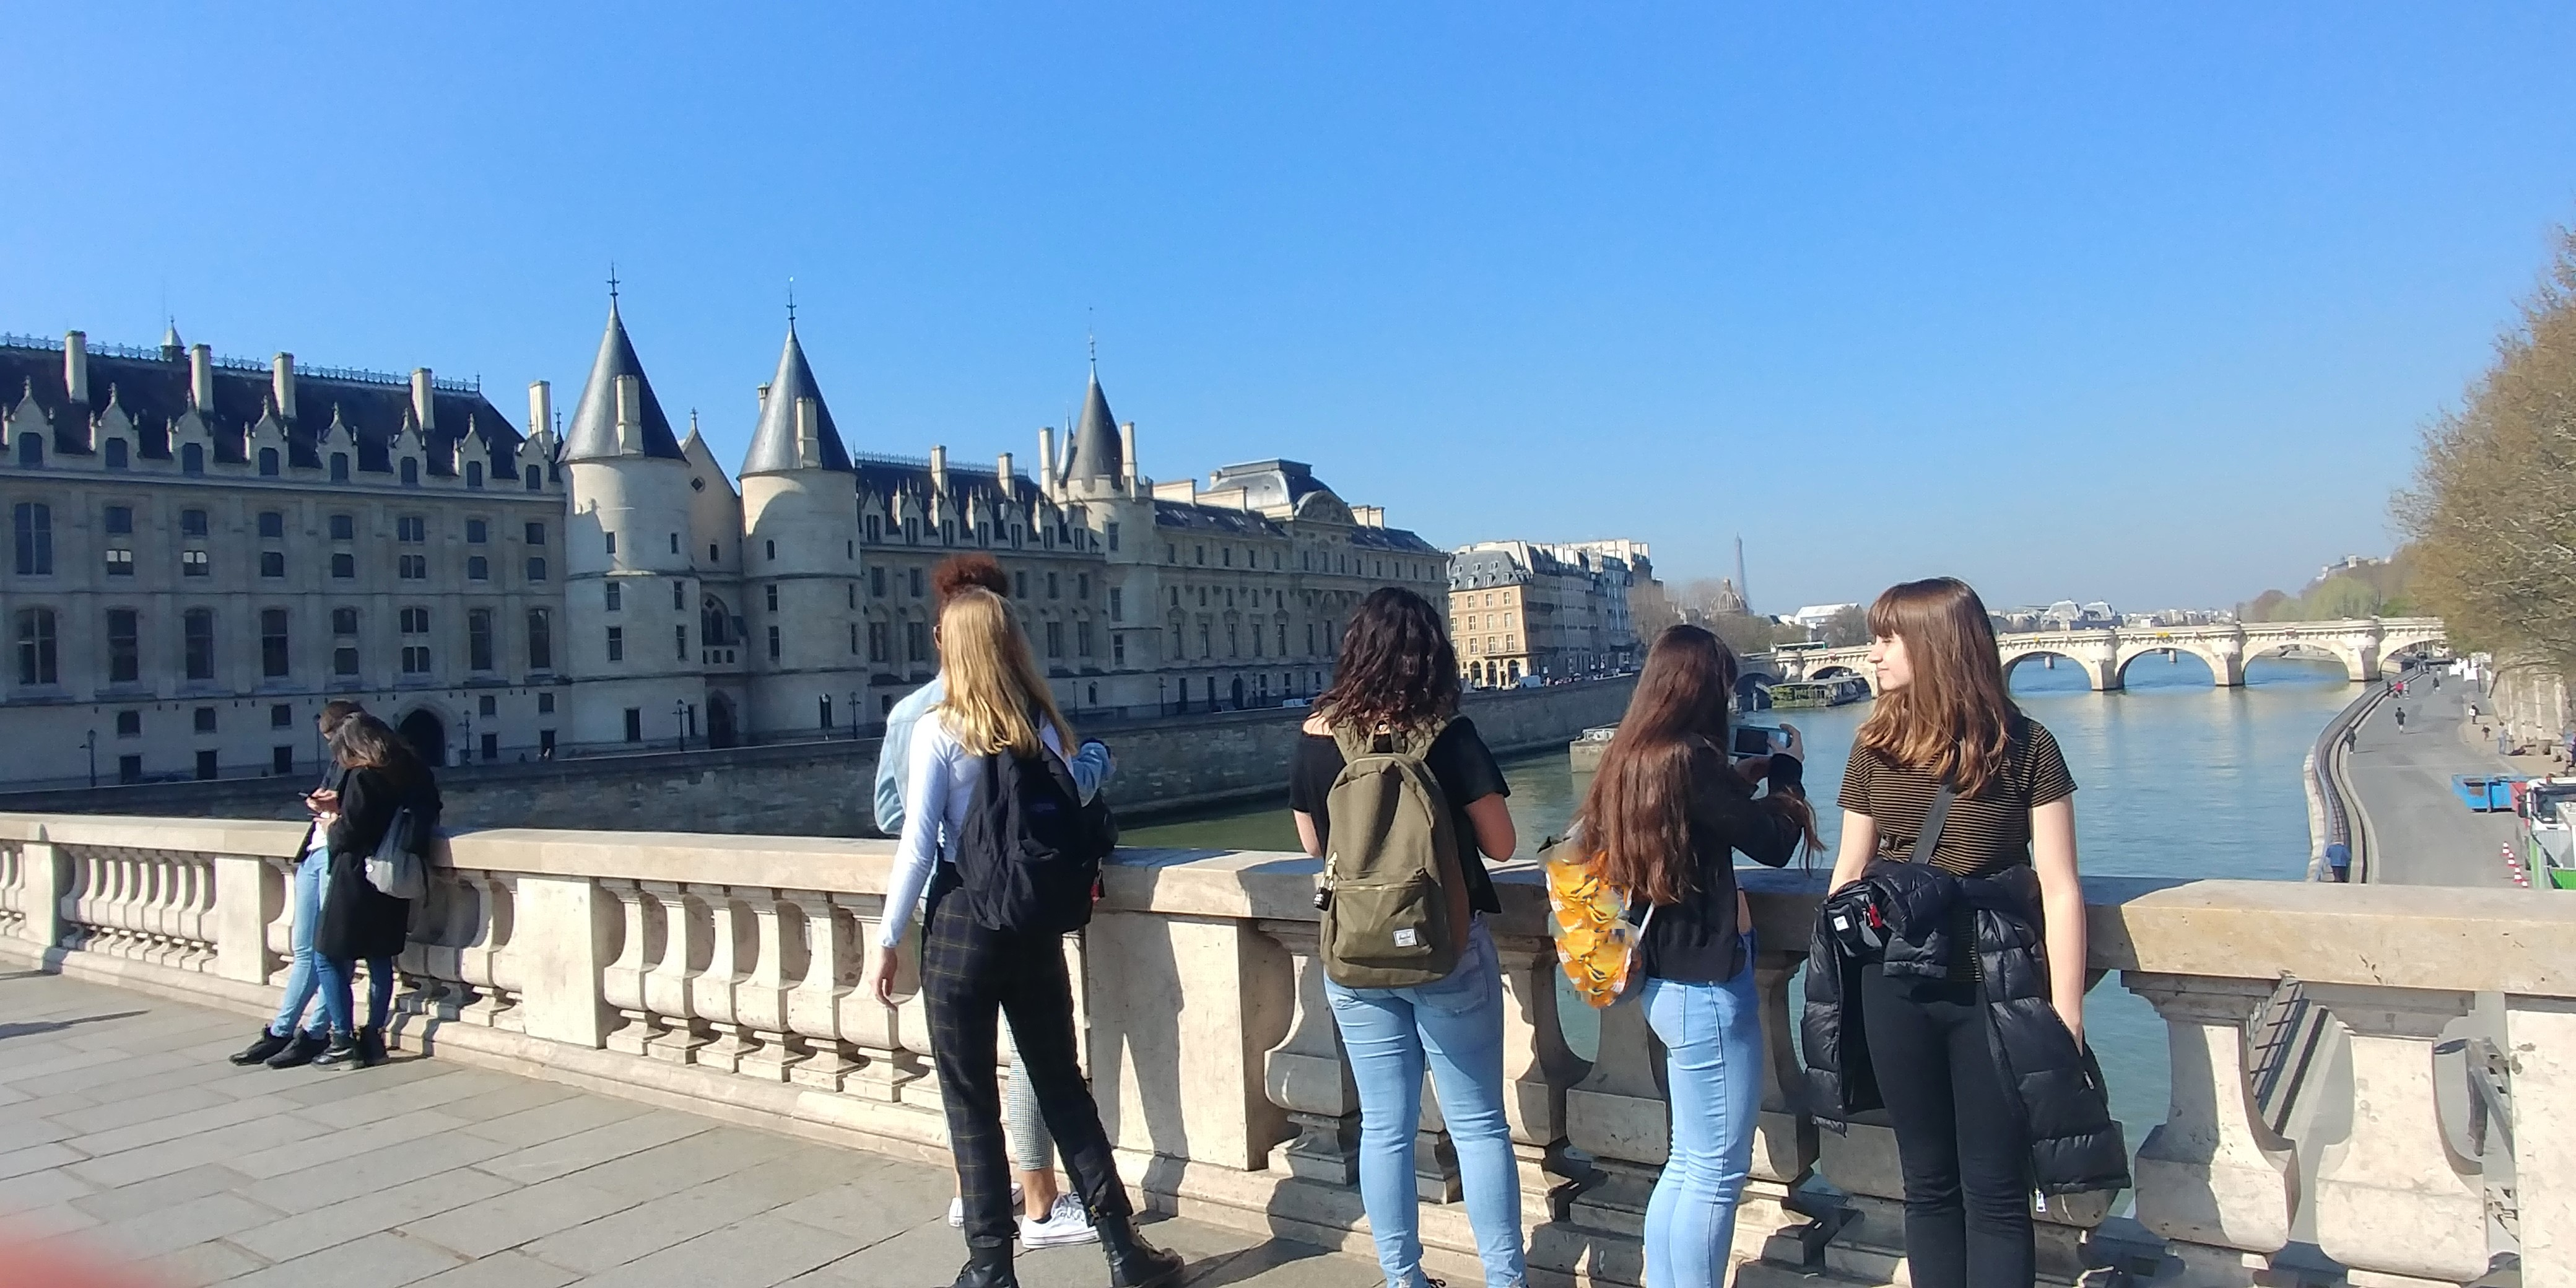 Students posing in front of the Conciergerie in Paris